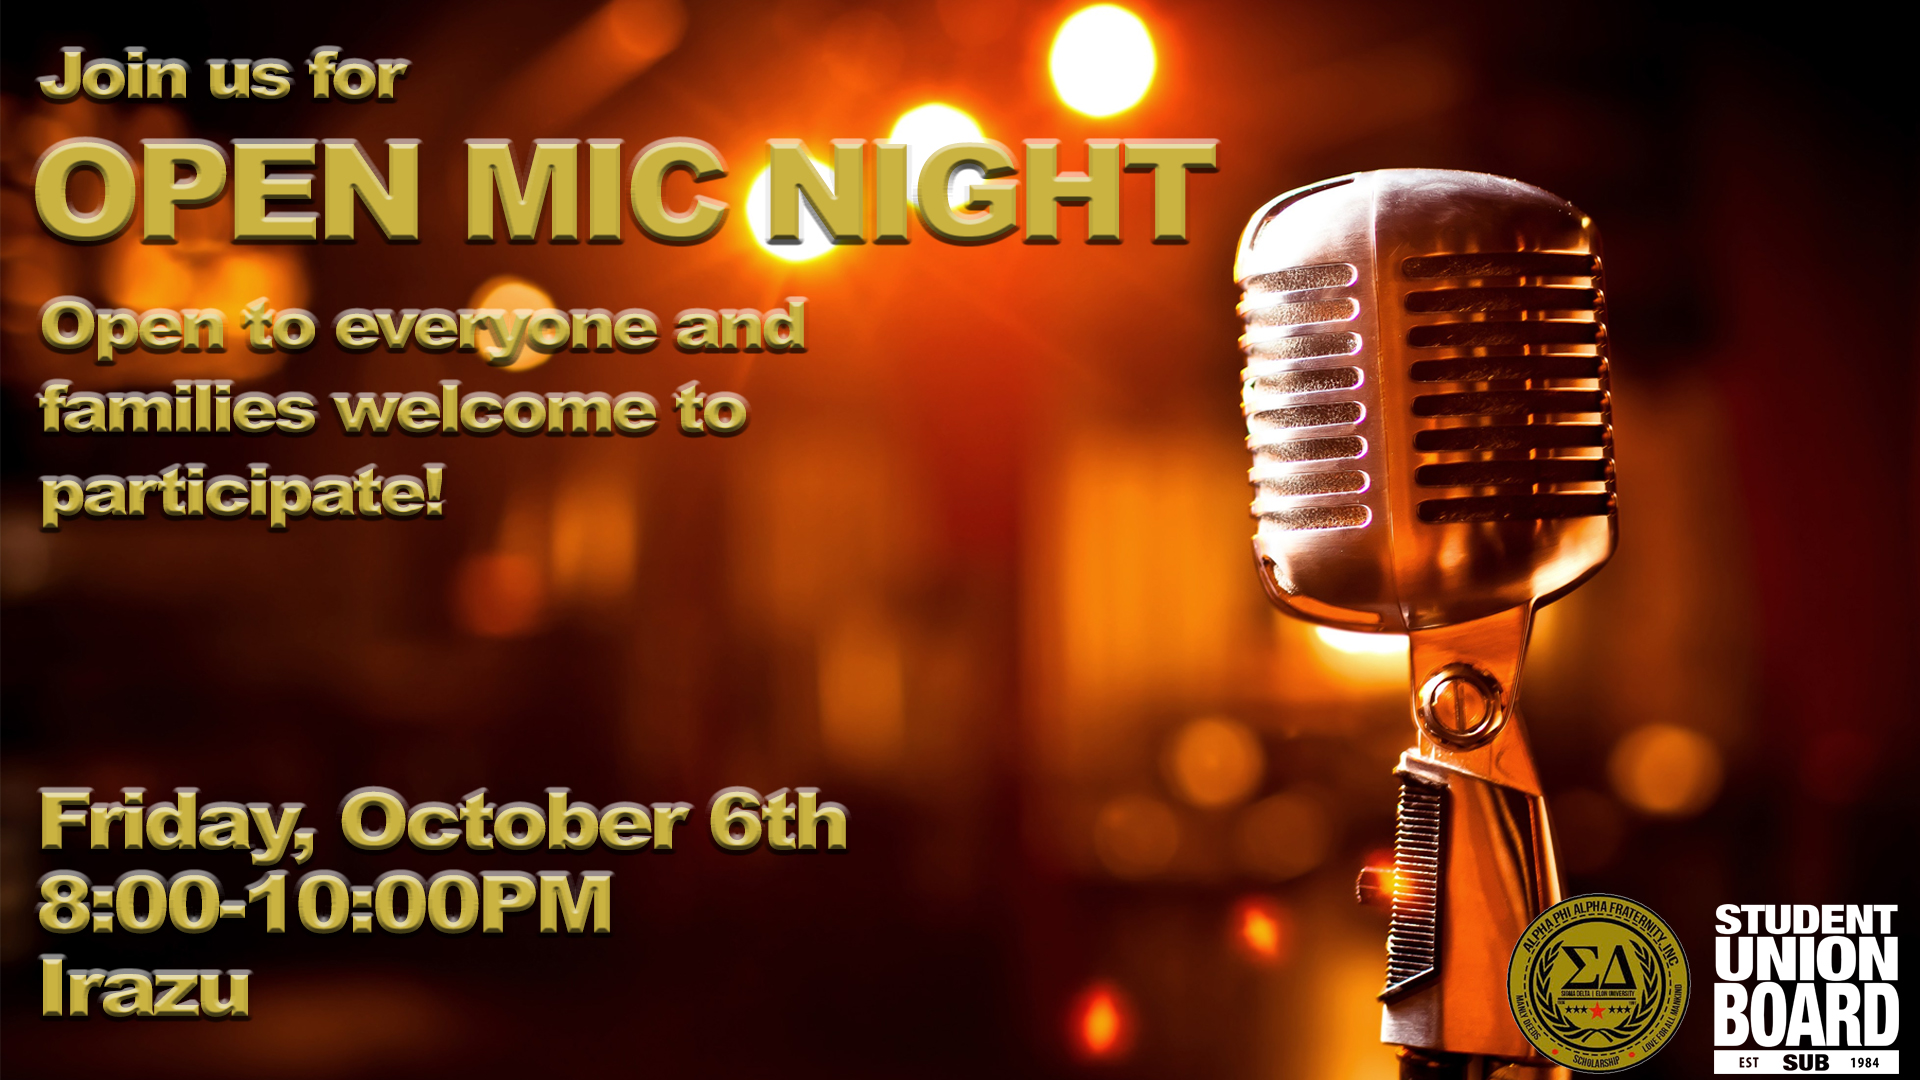 An open mic night with our amazingly talented students (and maybe even a few families)! This will be a great opportunity for our Elon community to express themselves through music, comedy, dance, magic, poetry, and other acts. You don't want to miss them take the stage! Join us for some light desserts in Irazu in the Moseley Student Center from 8-10pm.